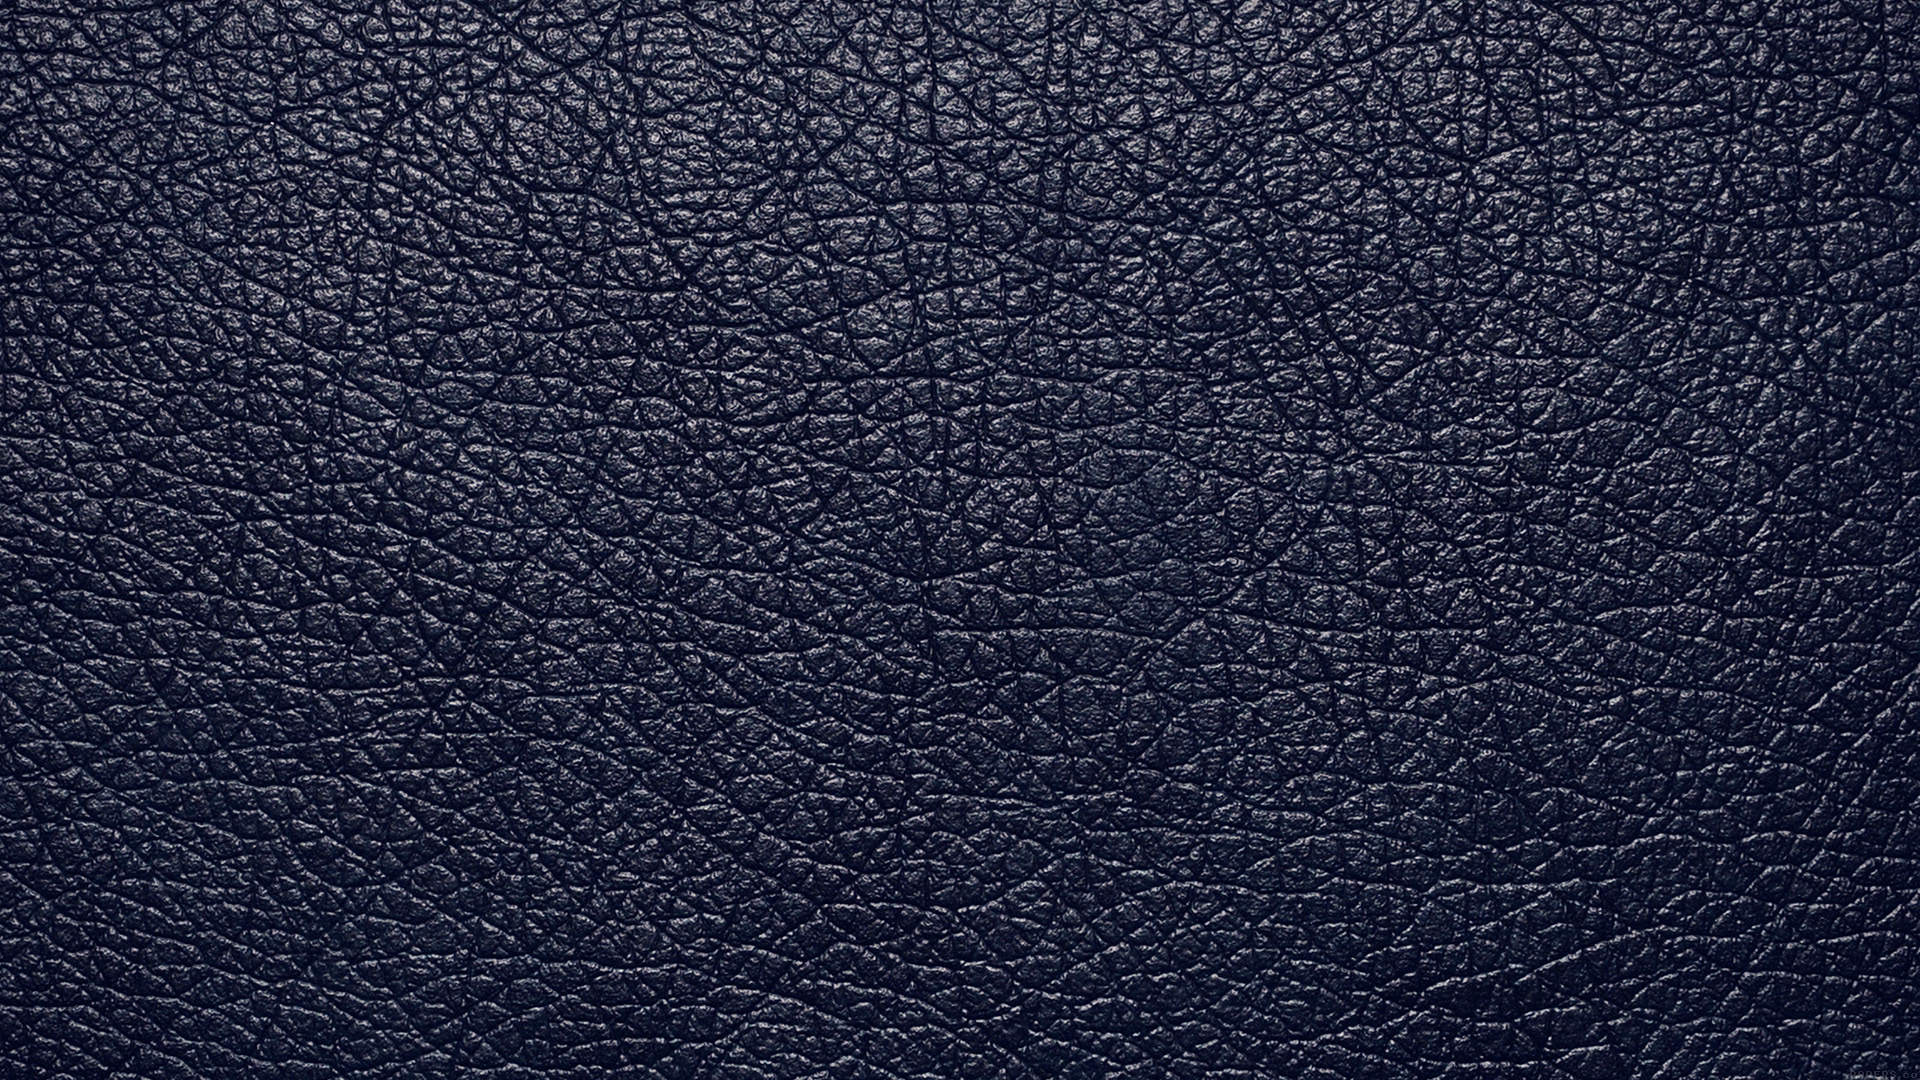 Leather Wallpaper Iphone X Vi30 Texture Skin Blue Dark Leather Pattern Papers Co